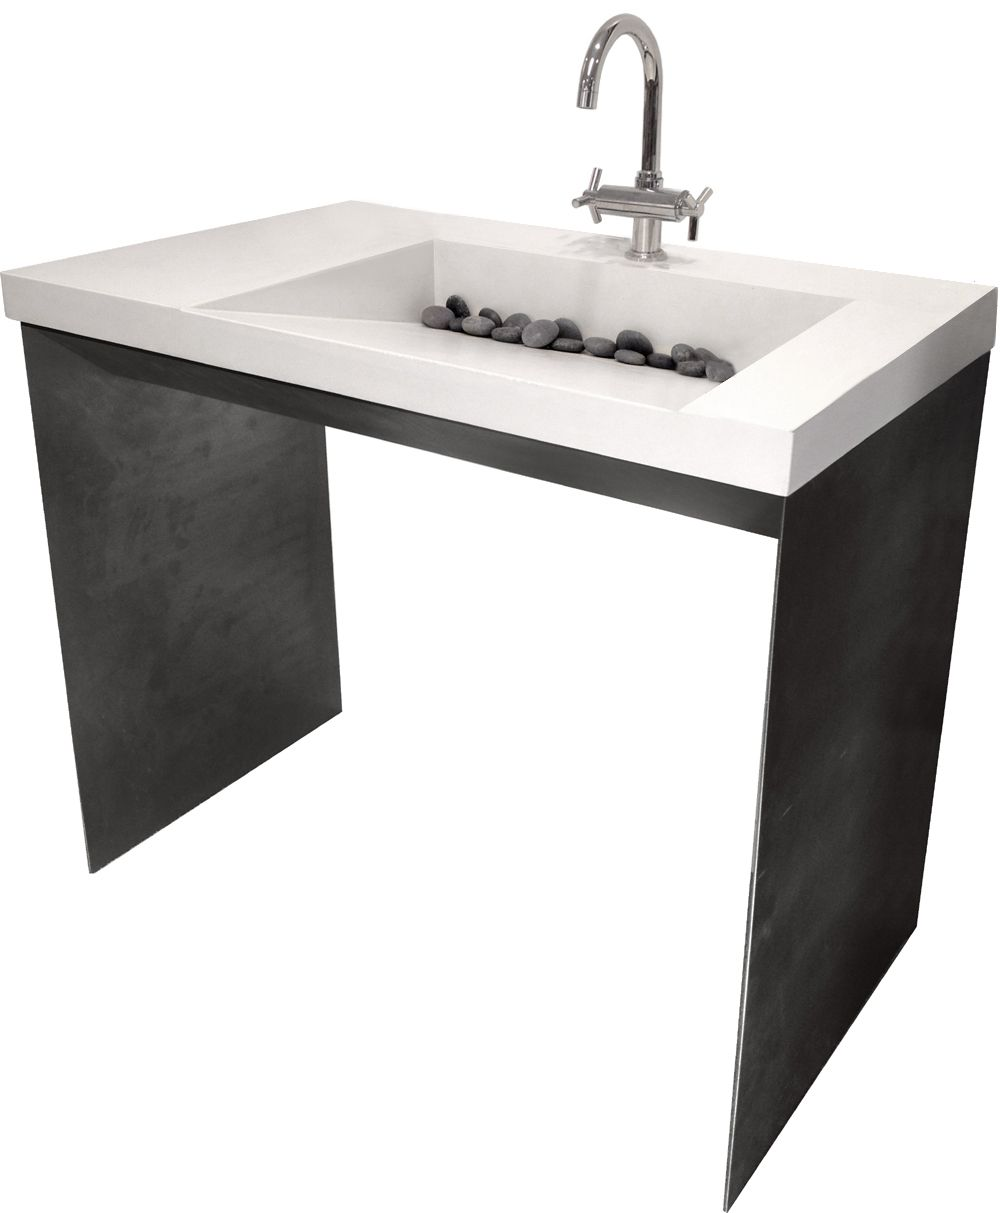 This Is The Contempo Sink With Features A Concrete Sink And